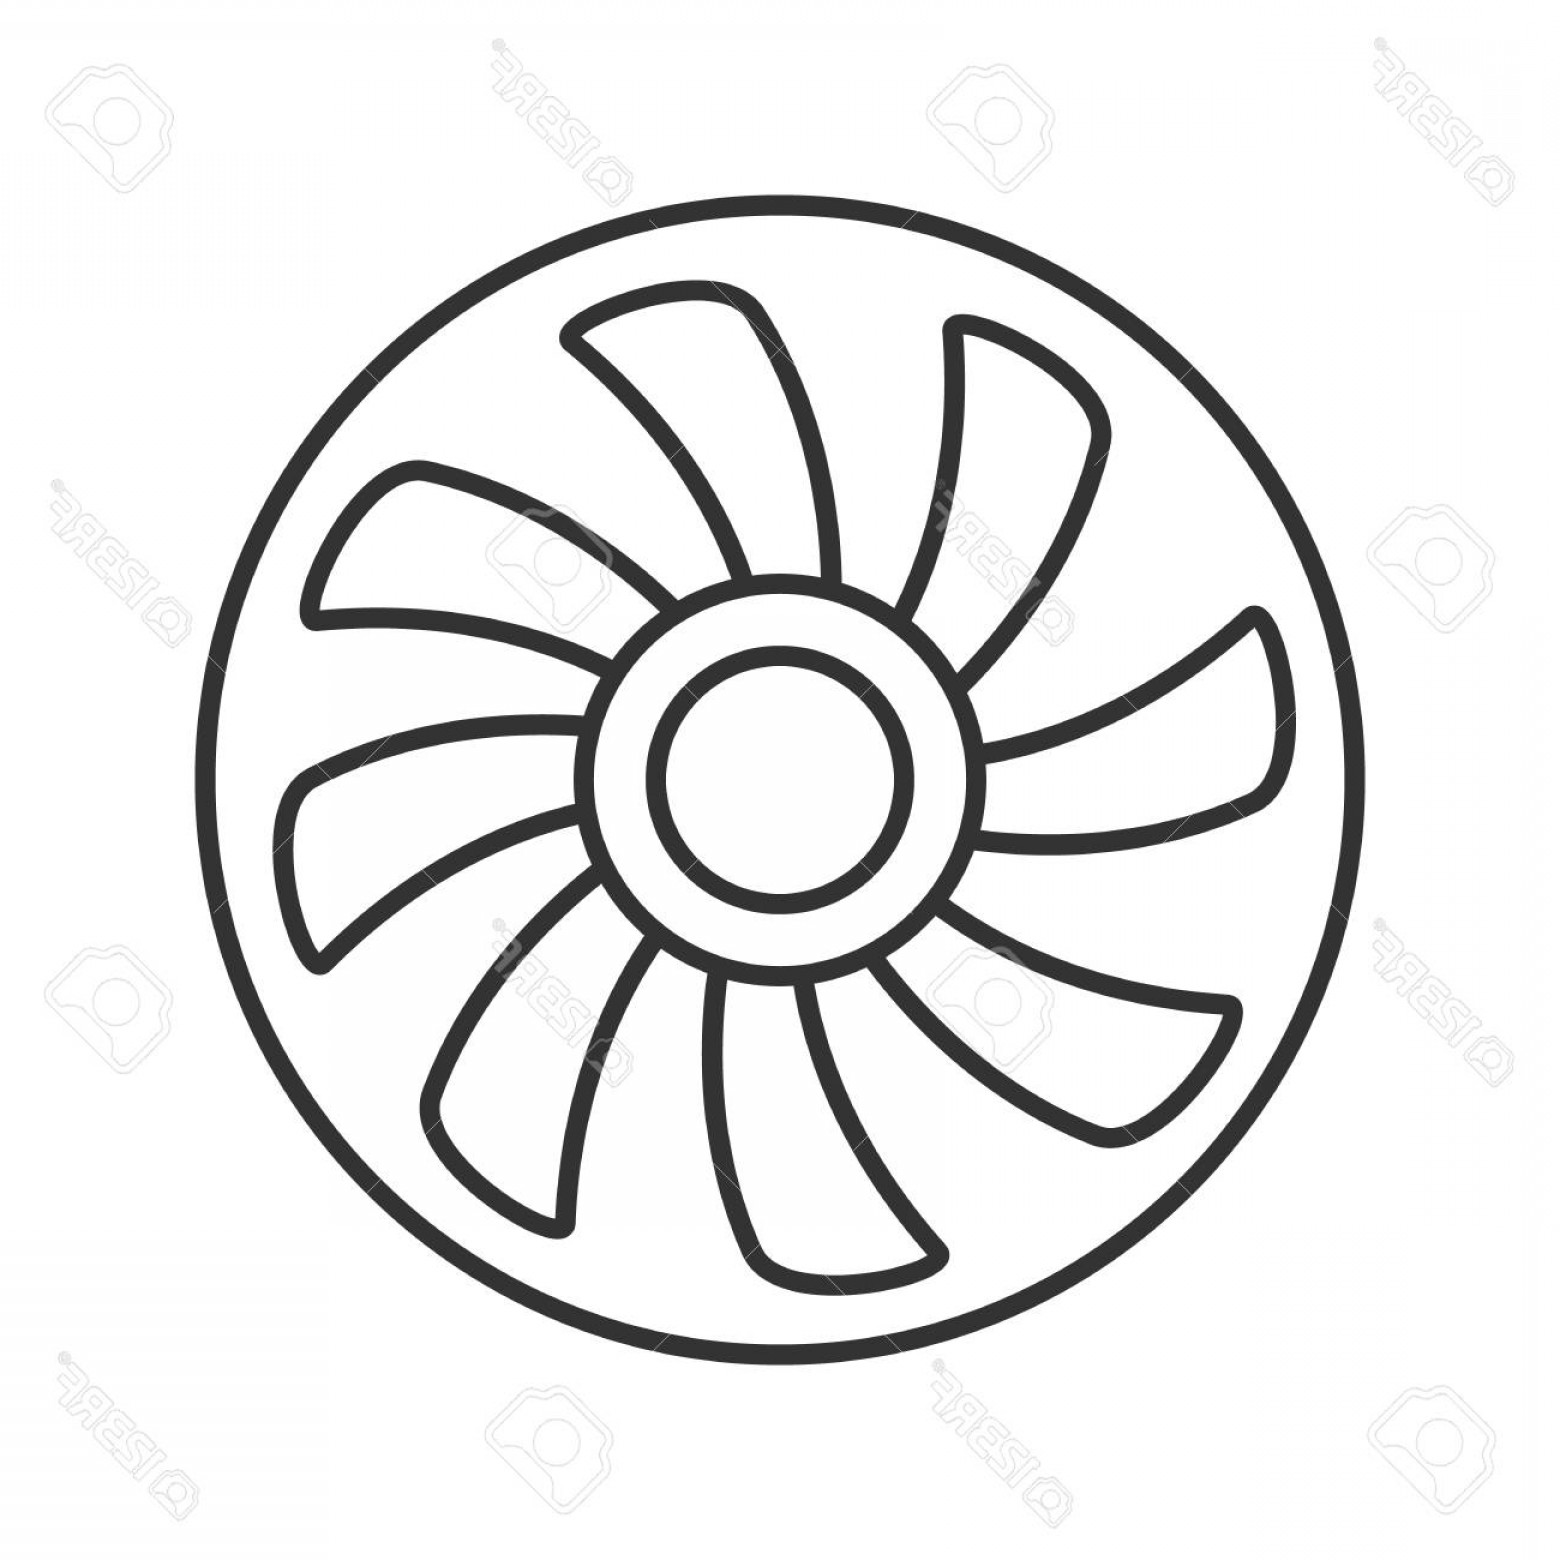 exhaust fan symbol drawing at getdrawings com